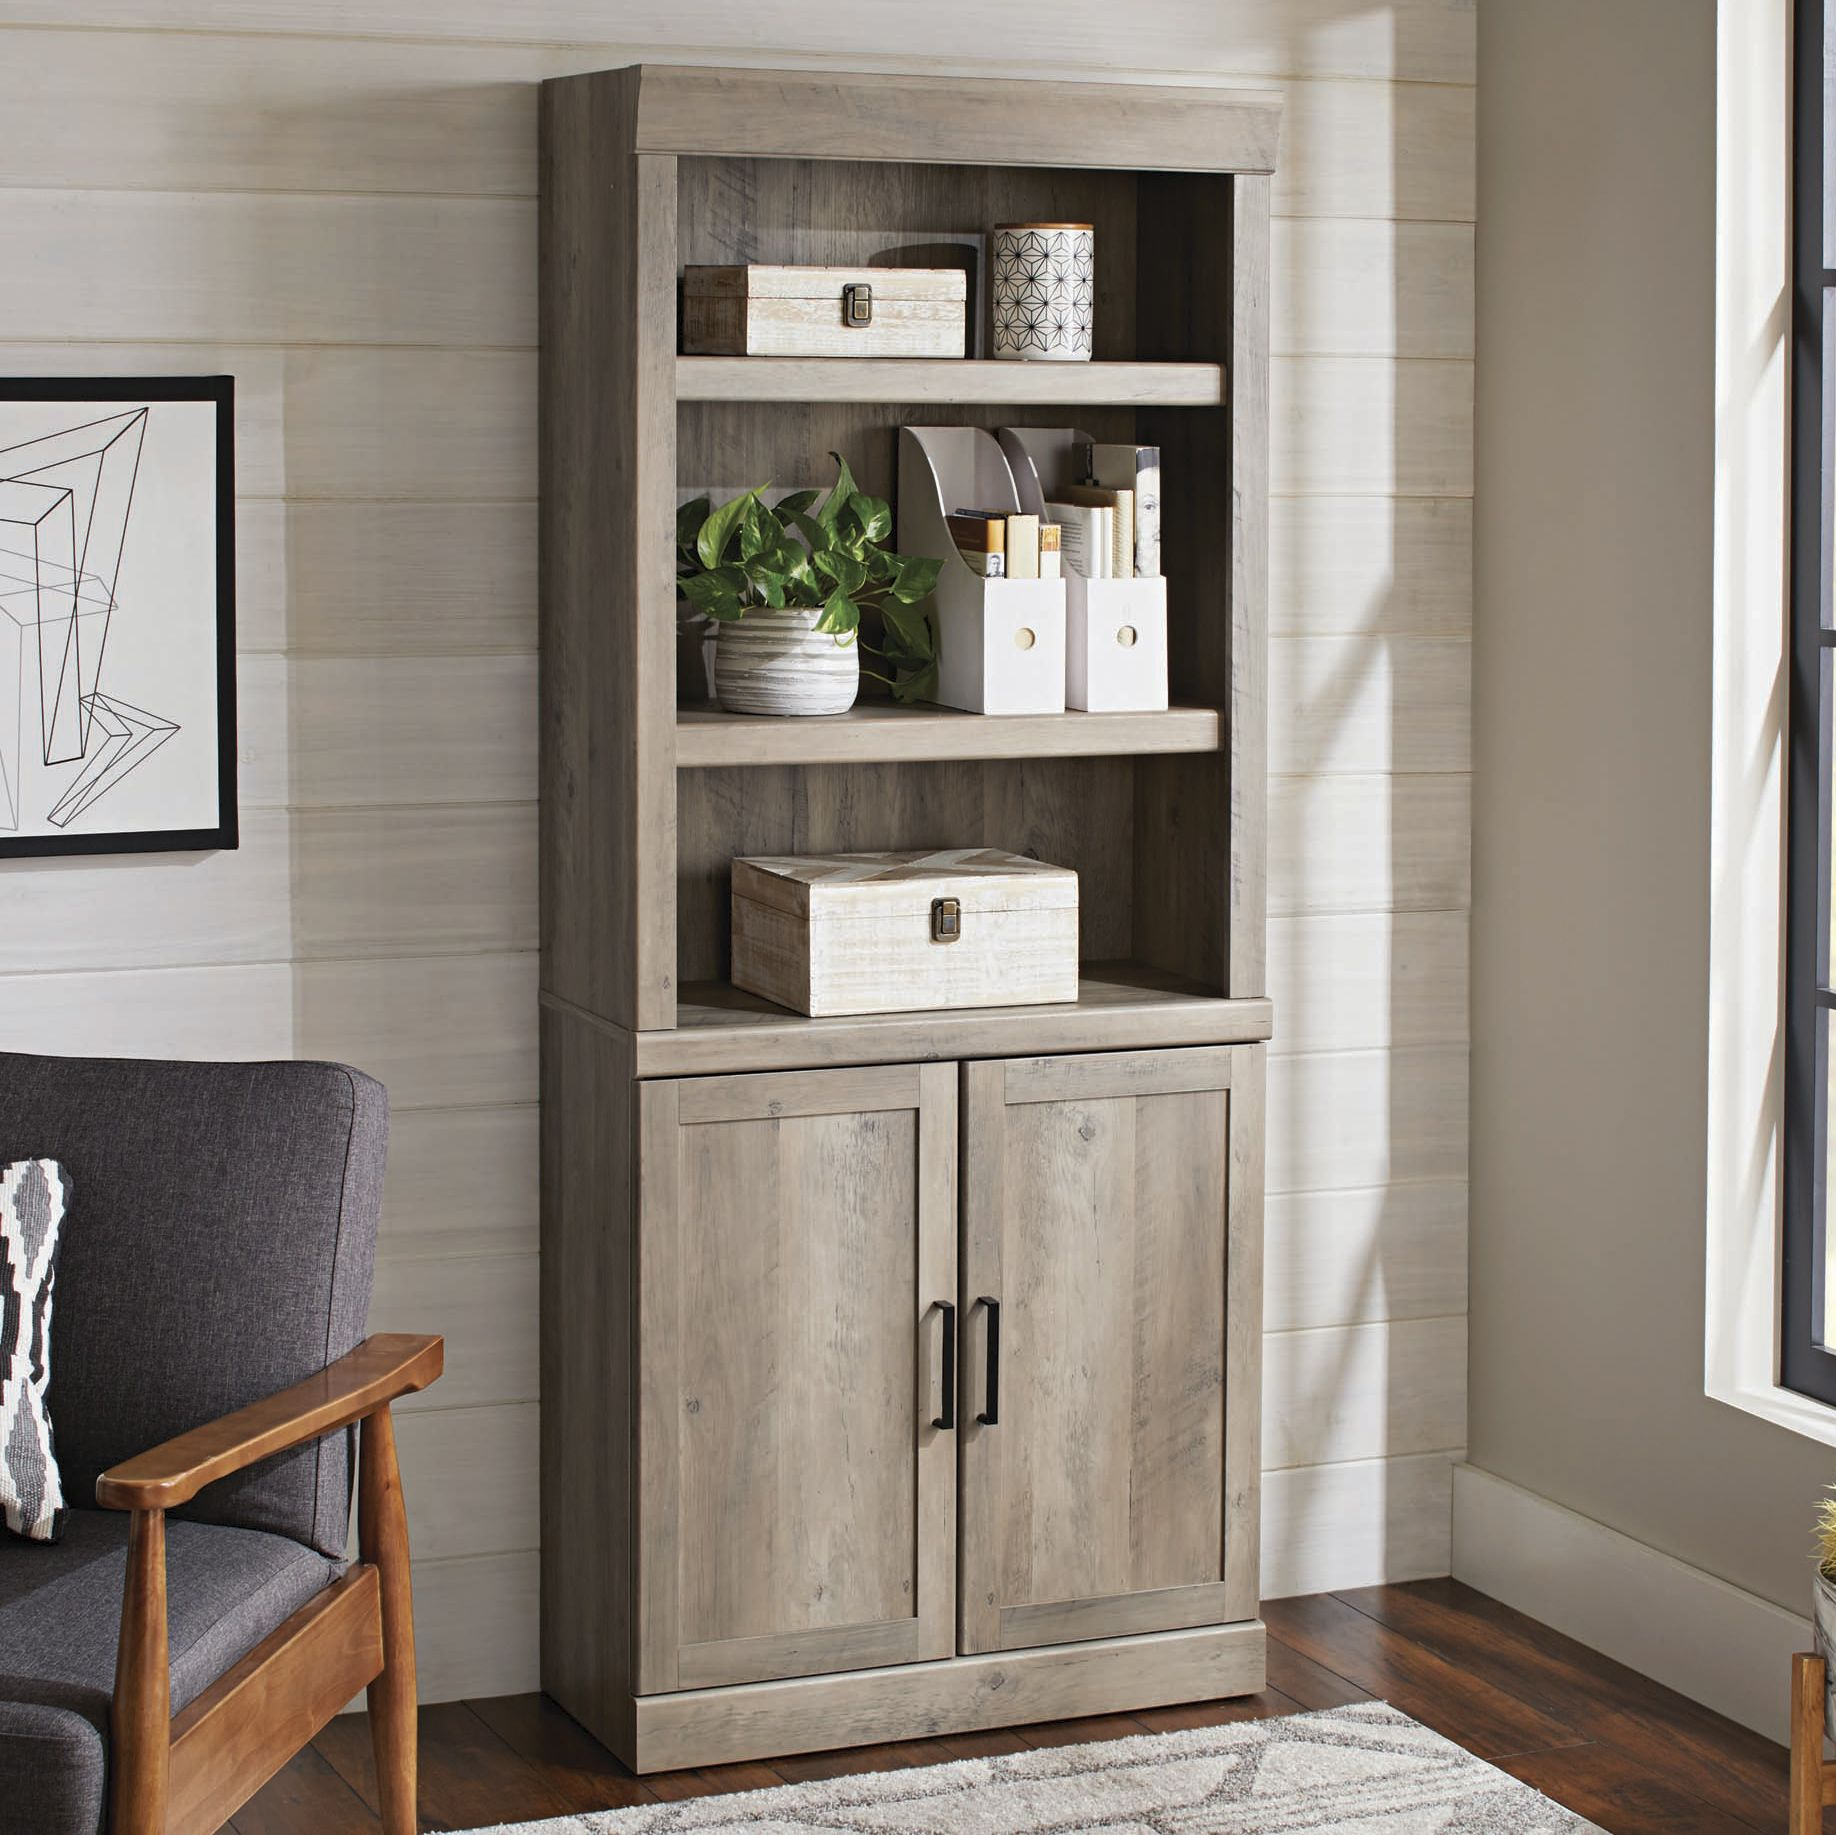 e224a92319f6307d990d6640b5aadf1f - Better Homes And Gardens Shutter Bookcase